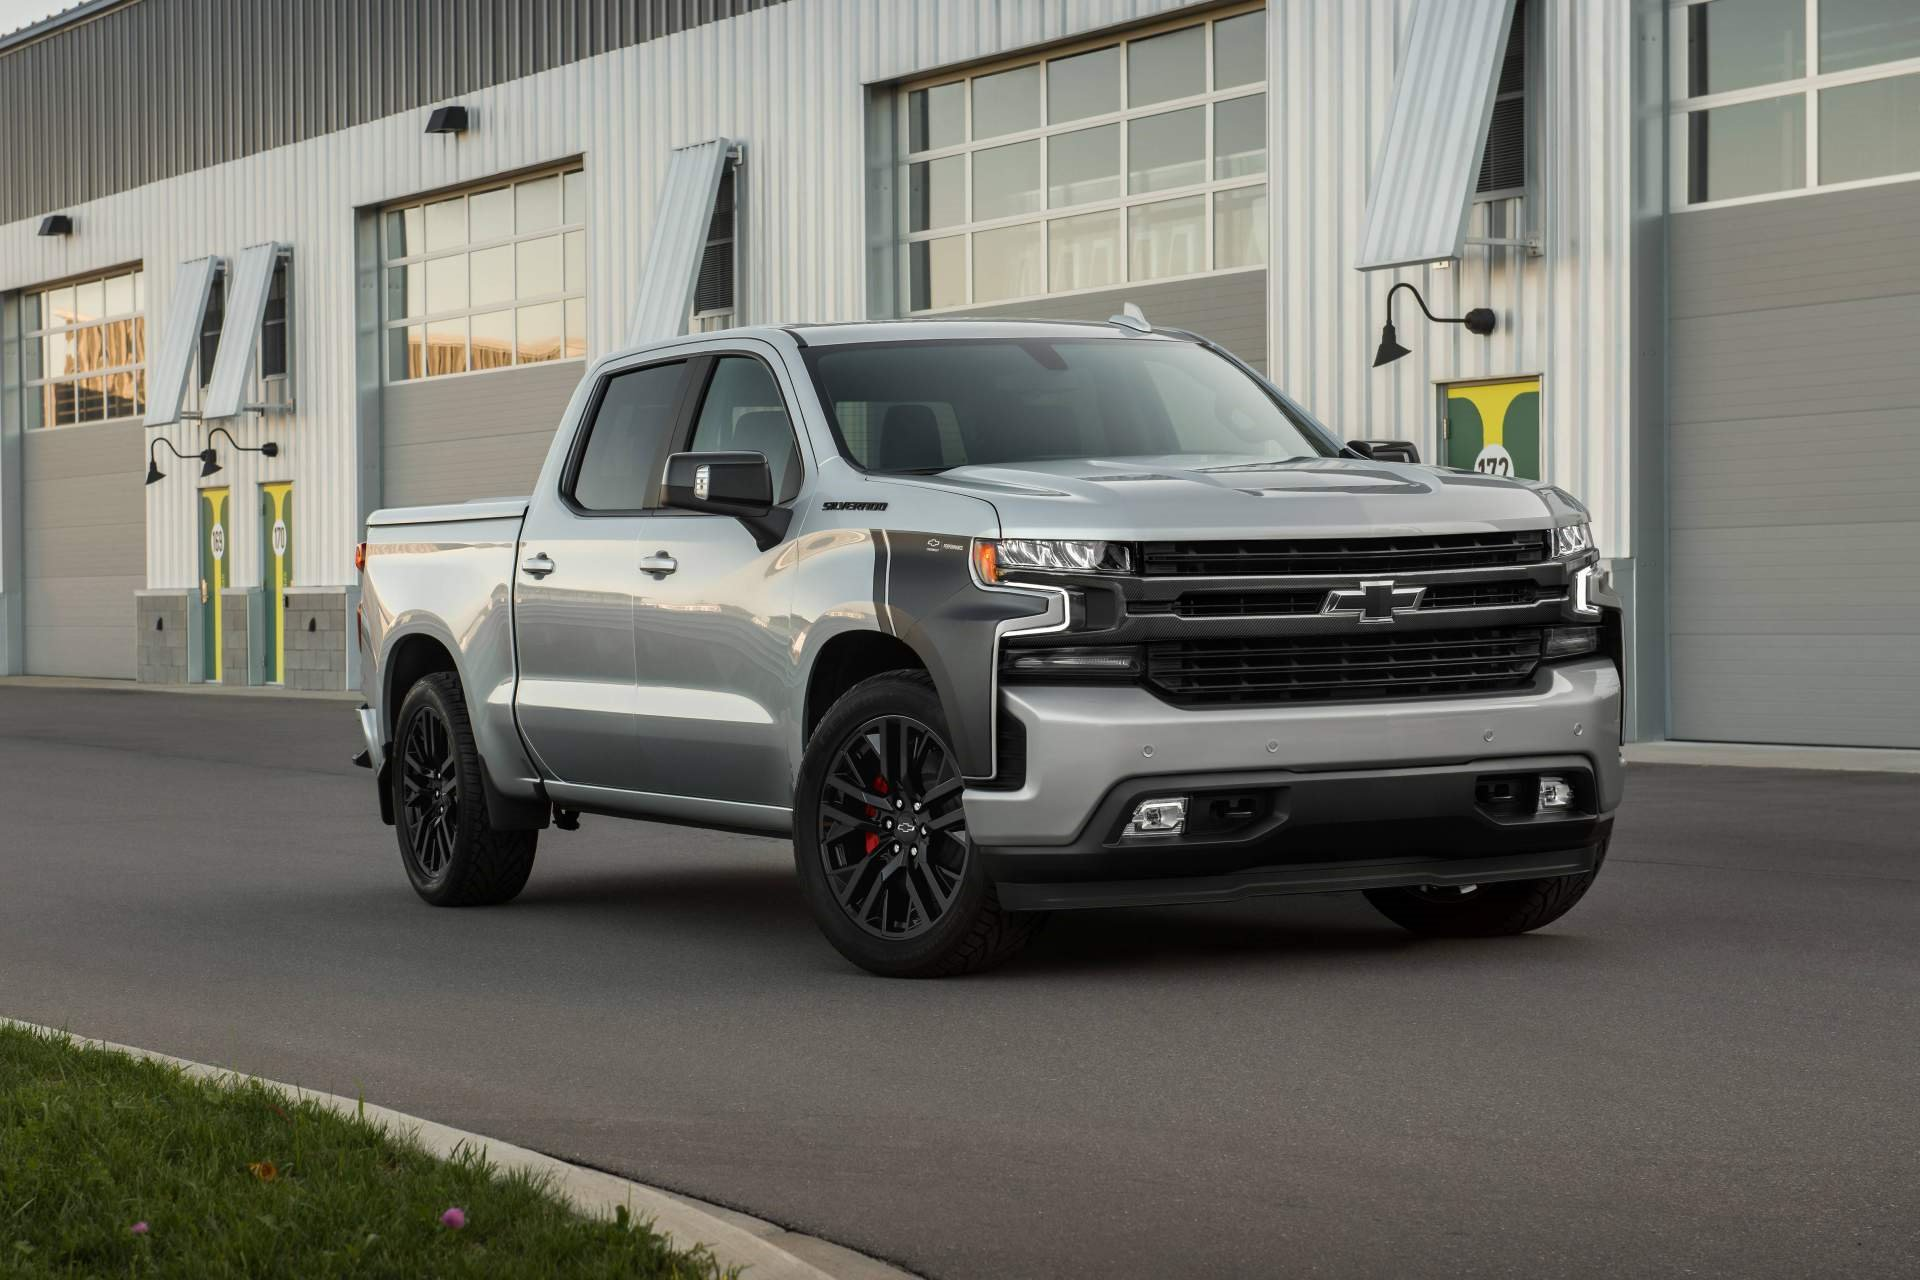 New 2019 Chevrolet-Silverado 1500 LD LT Silverado 1500 LD LT for sale $42,700 at M and V Leasing in Brooklyn NY 11223 1